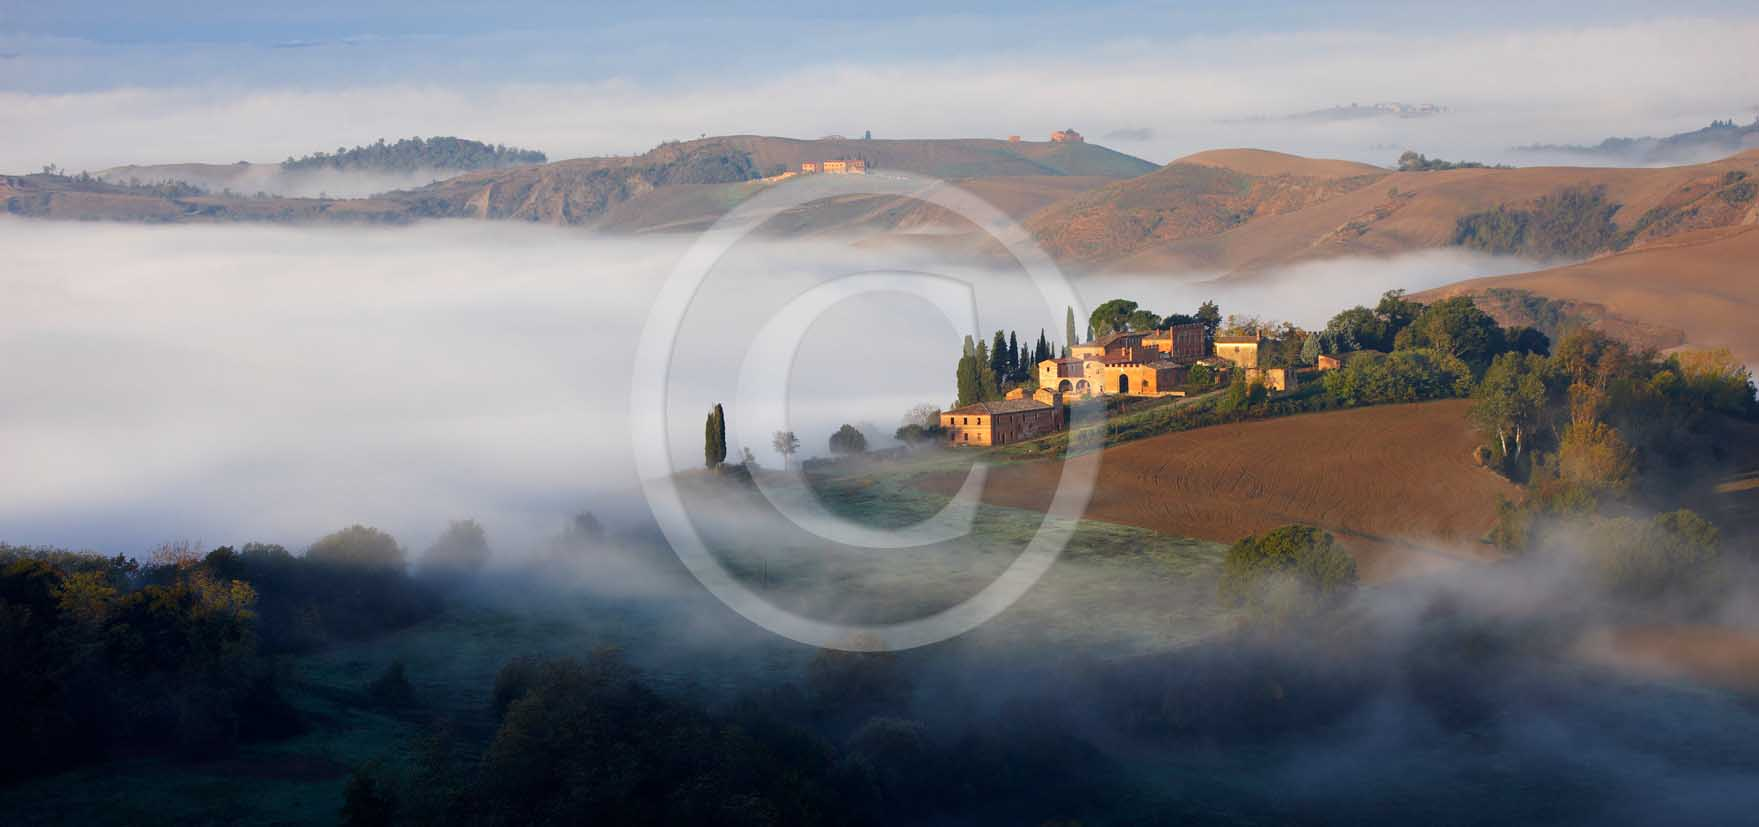 2011 - Panoramic view on surise in autumn with fog at Montemori place in Crete Senesi land.